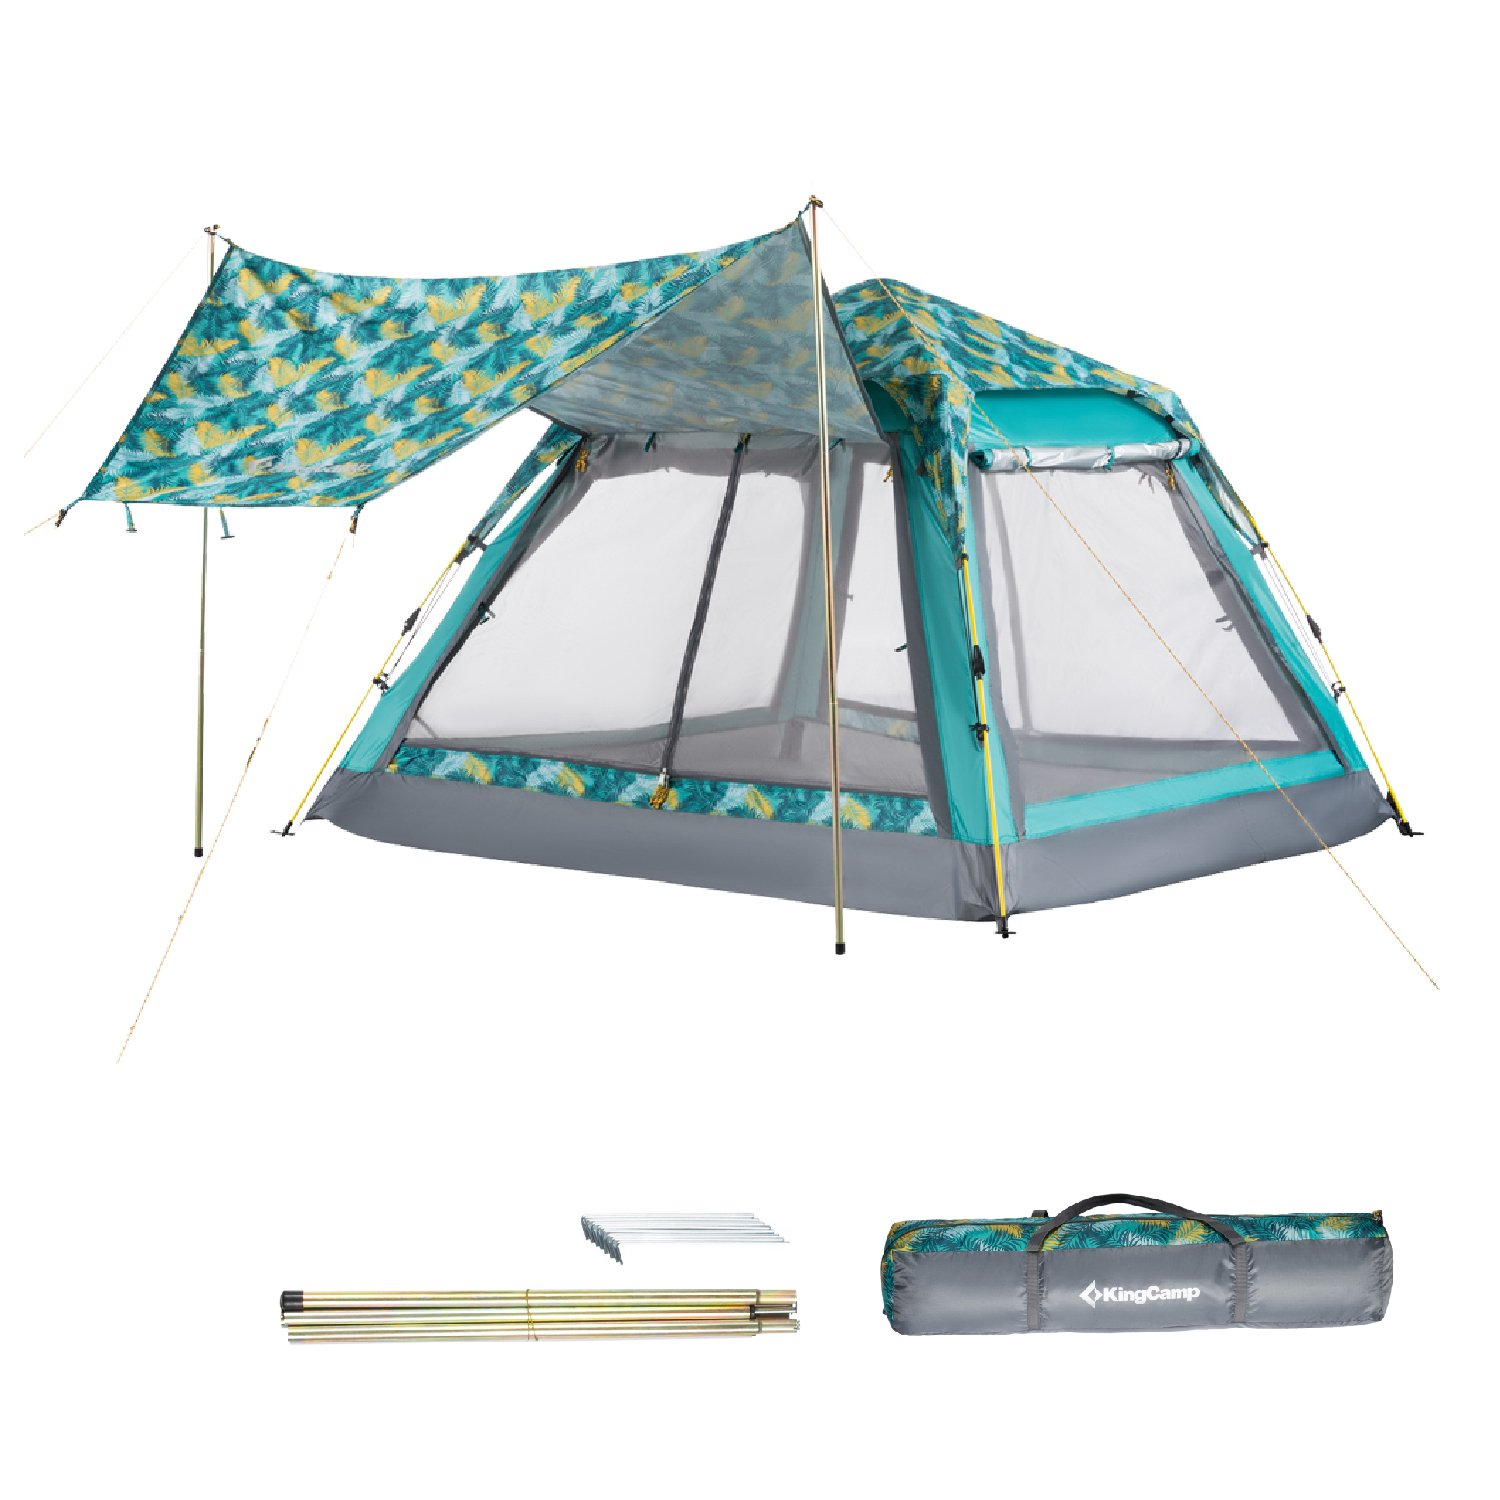 KingCamp Quick Up 3-4 Person Screen House Leisure Beach Tent UPF 50+ with Canopy for Beach Camping (Palm Green)